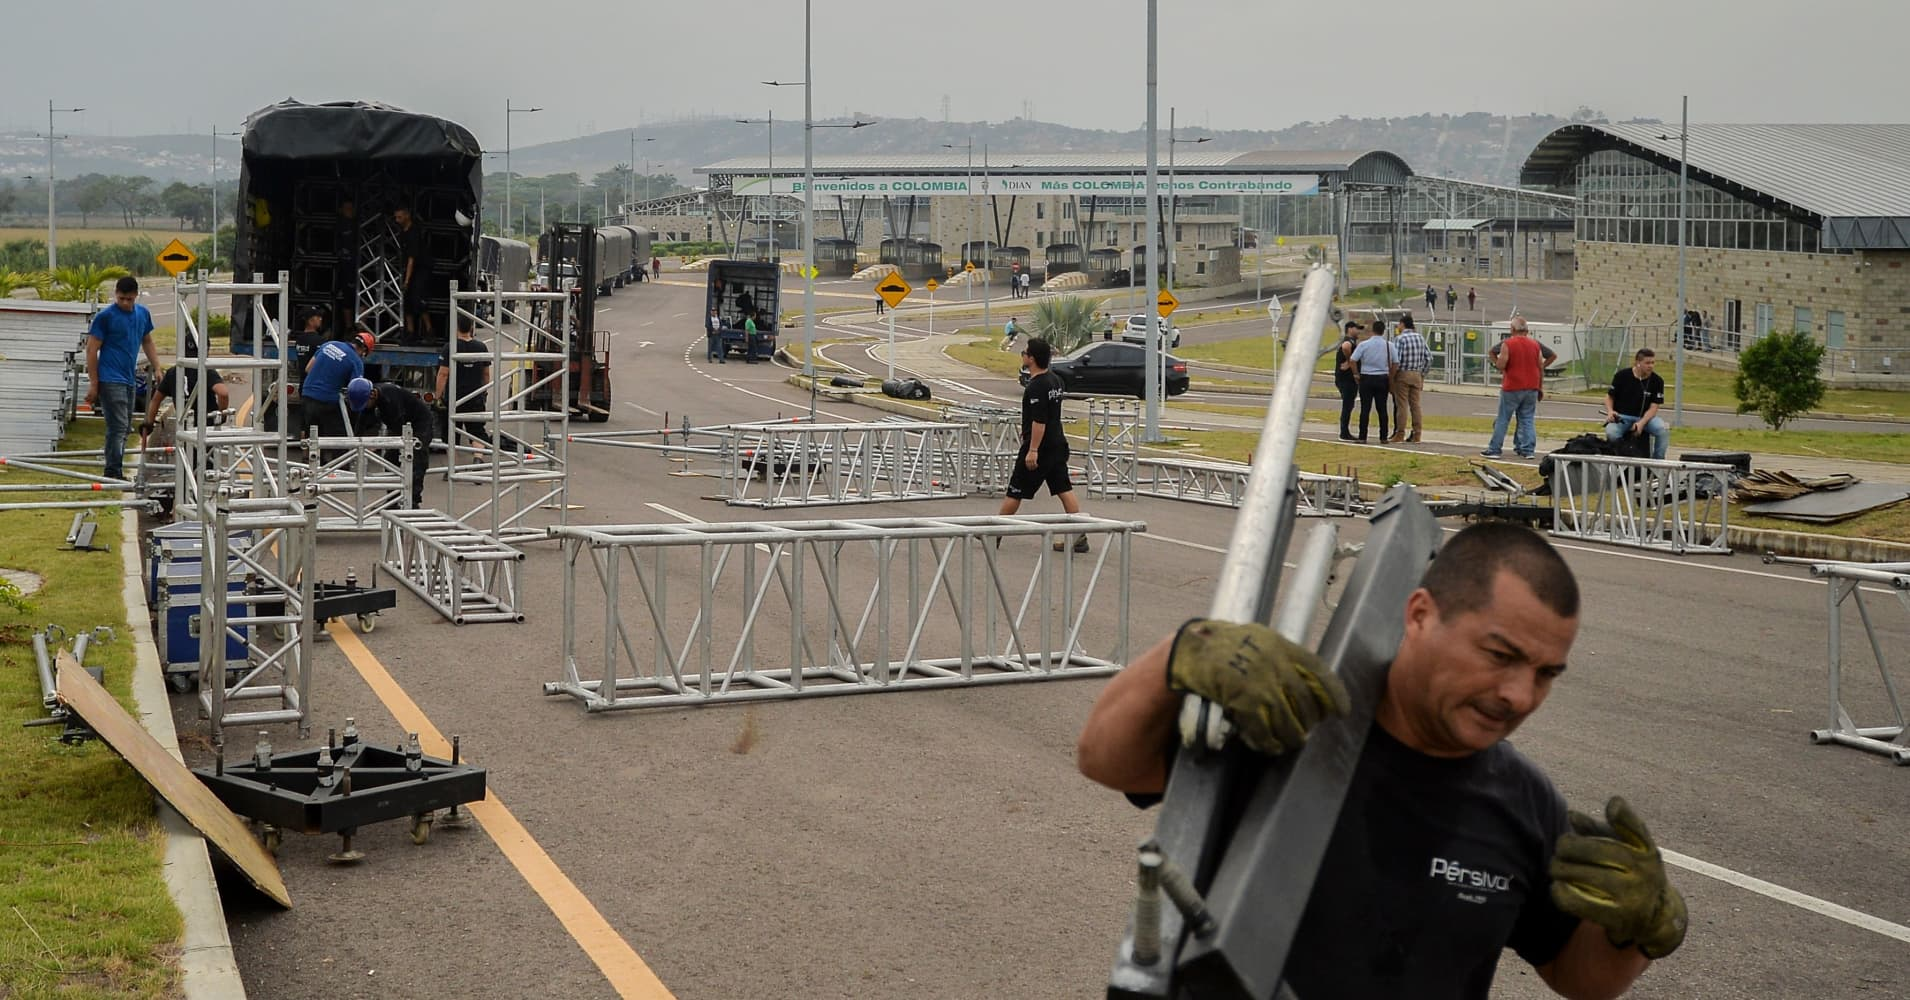 On February 18 2019, Workers assemble the platform for the February 22 concert organized by British billionaire Richard Branson to raise money for the Venezuelan relief effort in Cucuta, Colombia, on the Tienditas International Bridge.